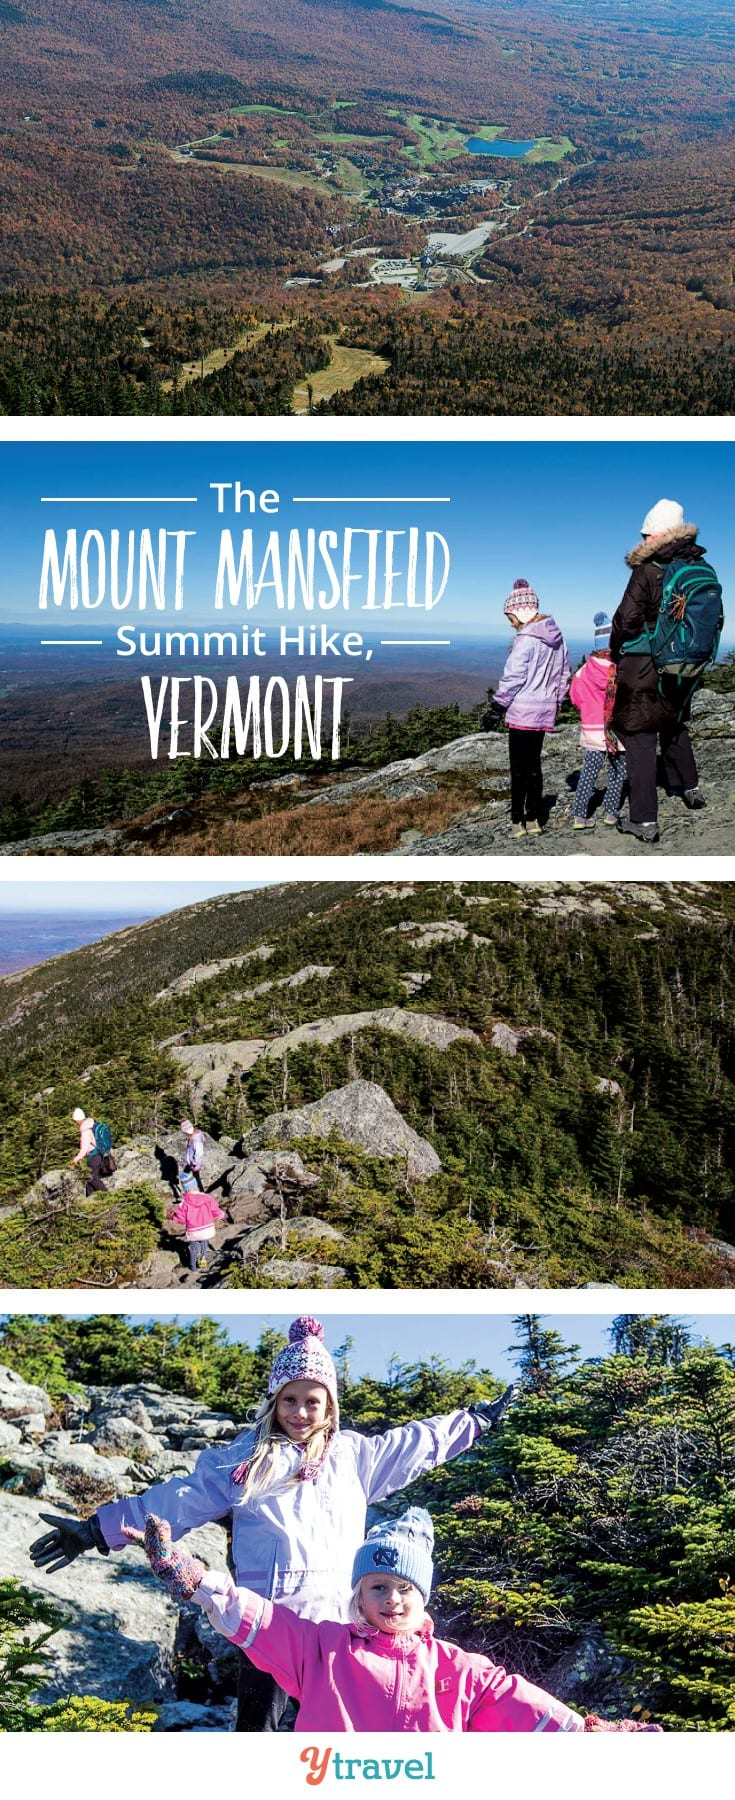 Not sure if there is a family friendly hike in Mount Mansfield in Vermont? Your kids will love this ridge walk to the summit of Mt Mansfield in Stowe. Epic 360 views #Familytravel #Vermont #NewEngland #hikes #MountMansfield #Stowe